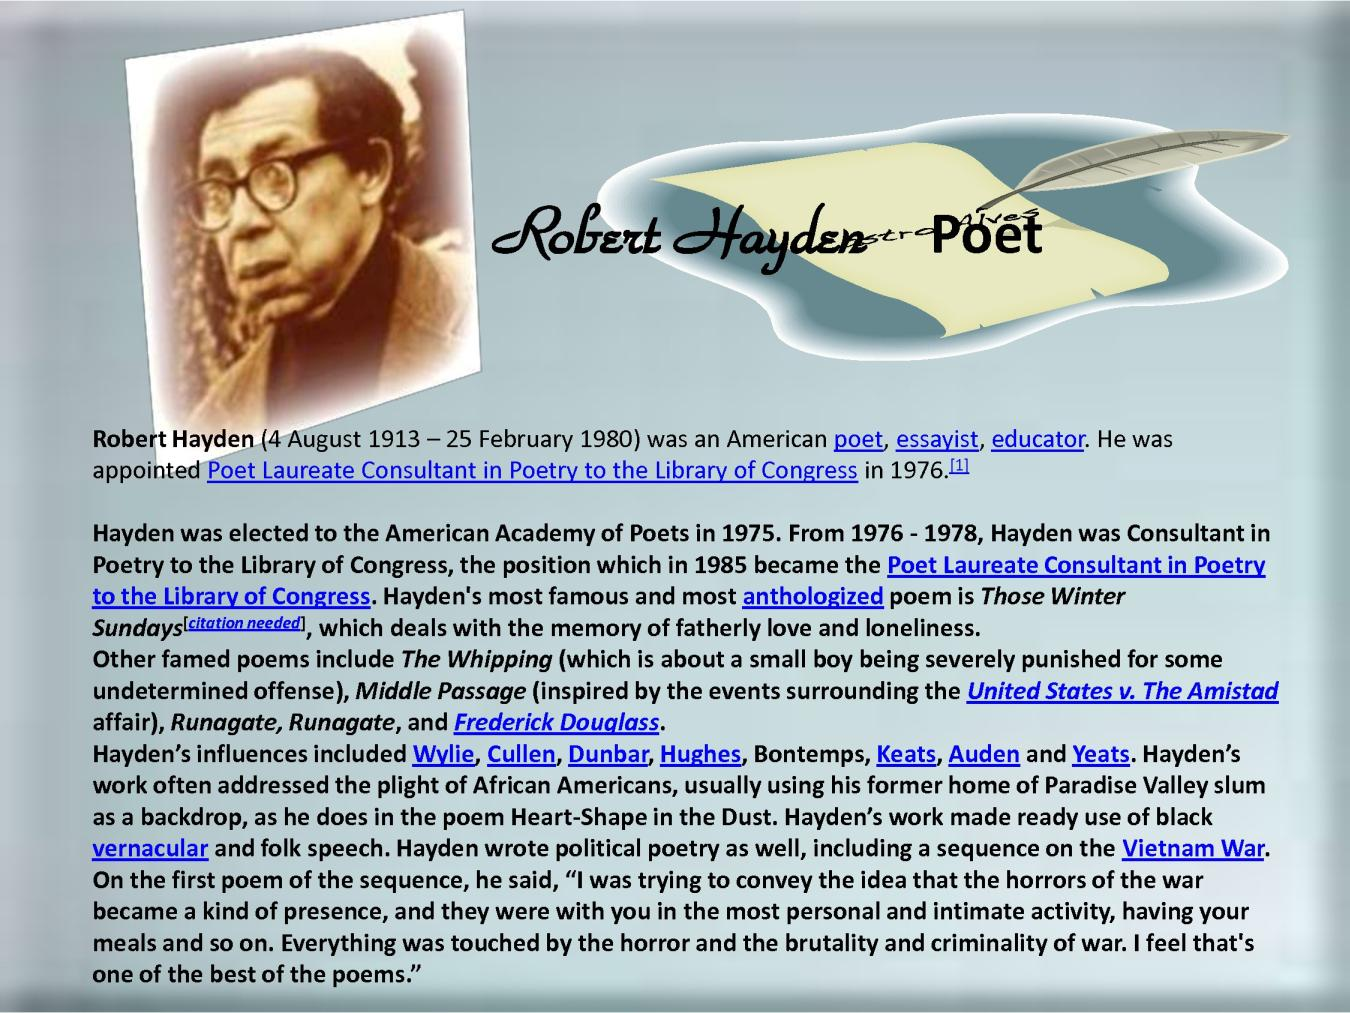 runagate runagate by robert hayden essay Runagate runagate by robert hayden about this poet born asa bundy sheffey into a poor family, robert hayden's parents left him to be raised by.